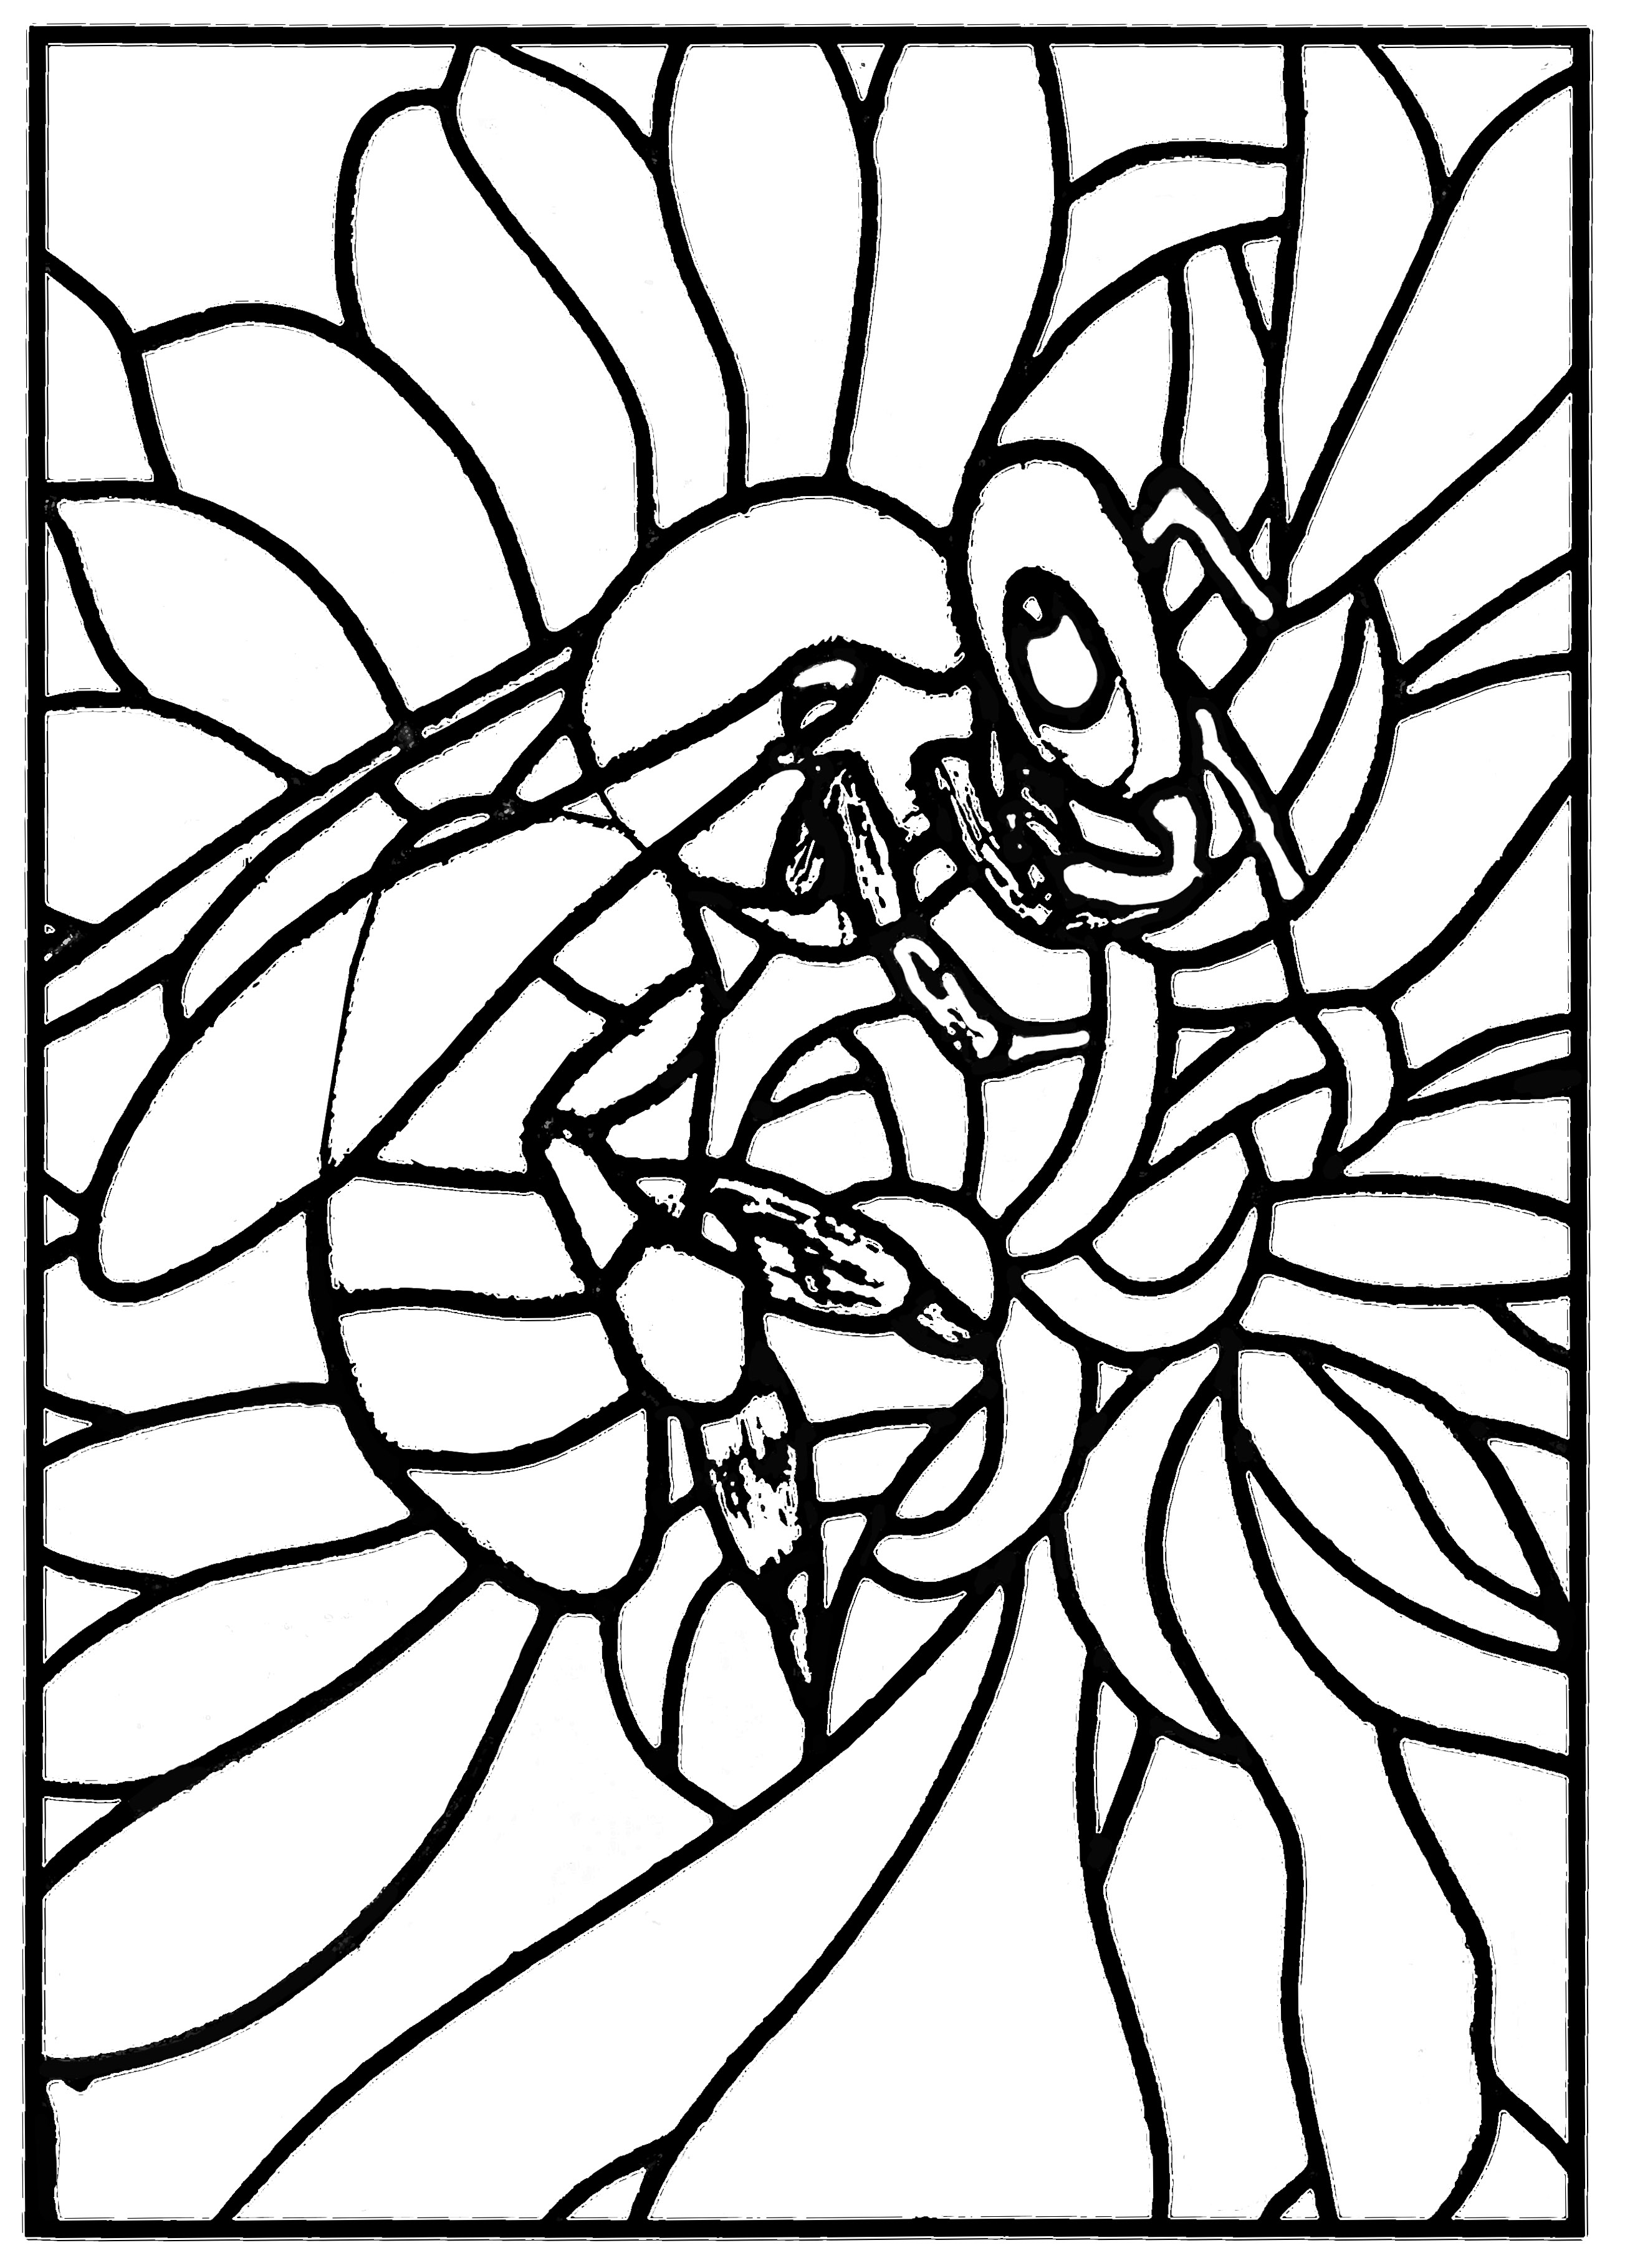 Stained glass bee workshop jb tosi 2010 stained glass for Stained glass coloring pages for adults